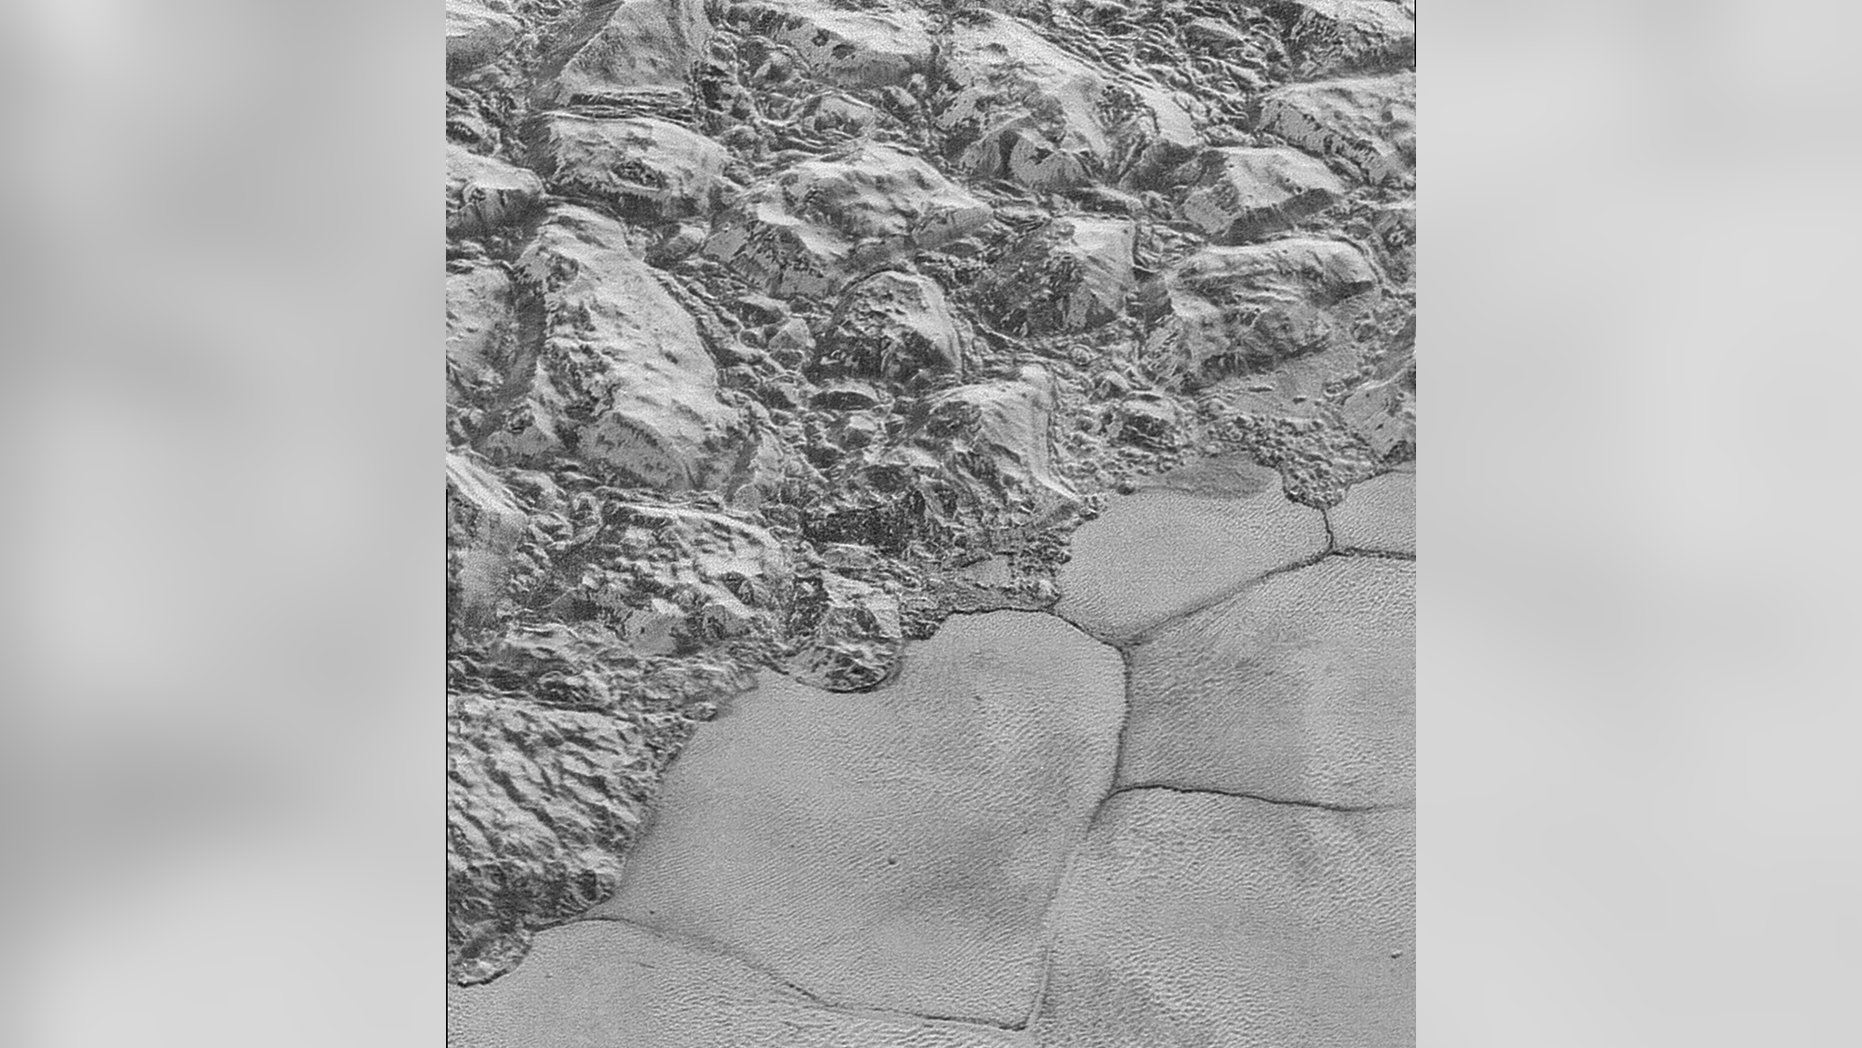 This photo taken by NASA's New Horizons spacecraft during its July 2015 flyby of Pluto shows the mountain range on the edge of the dwarf planet's Sputnik Planitia ice plain. Dune formations are clearly visible in the bottom half of the picture.